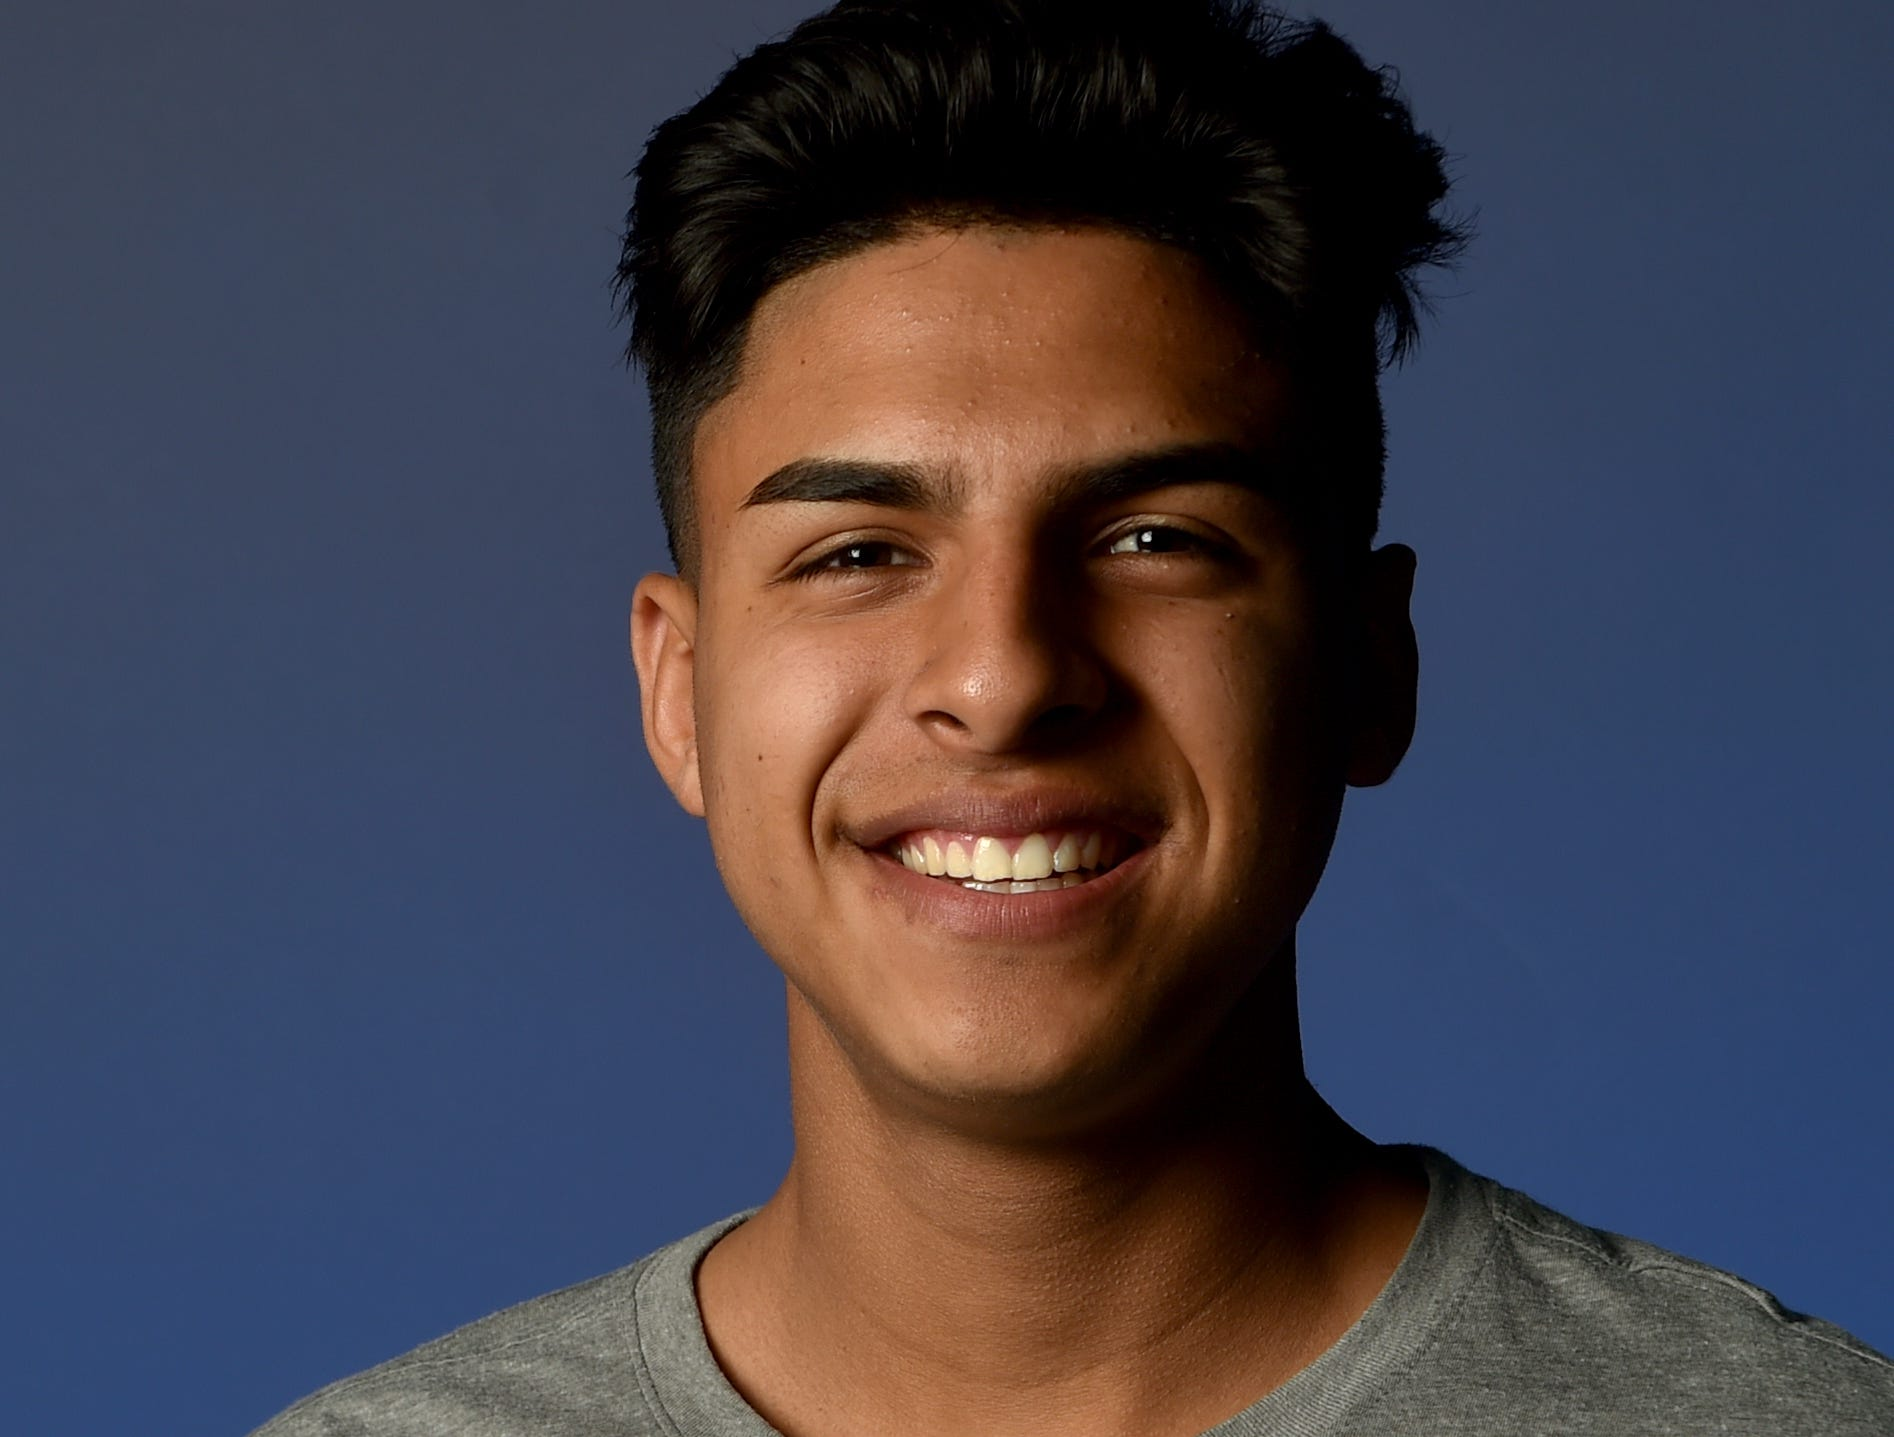 """OSCAR SALINAS, Hueneme: The 5-foot-6 senior was the creative forced for the Division I powerhouse Vikings, The first-team All-Citrus Coast League selection had three goals and 13 assists. He had two goals in the 3-0 win over Oxnard on Dec. 28 and an assist in the 3-0 win over Harvard-Westlake in the playoffs. Salinas plans to continue his soccer career at Oxnard College. He enjoys playing soccer """"all day."""" He roots for FC Barcelona and Argentine superstar Lionel Messi is his favorite athlete."""